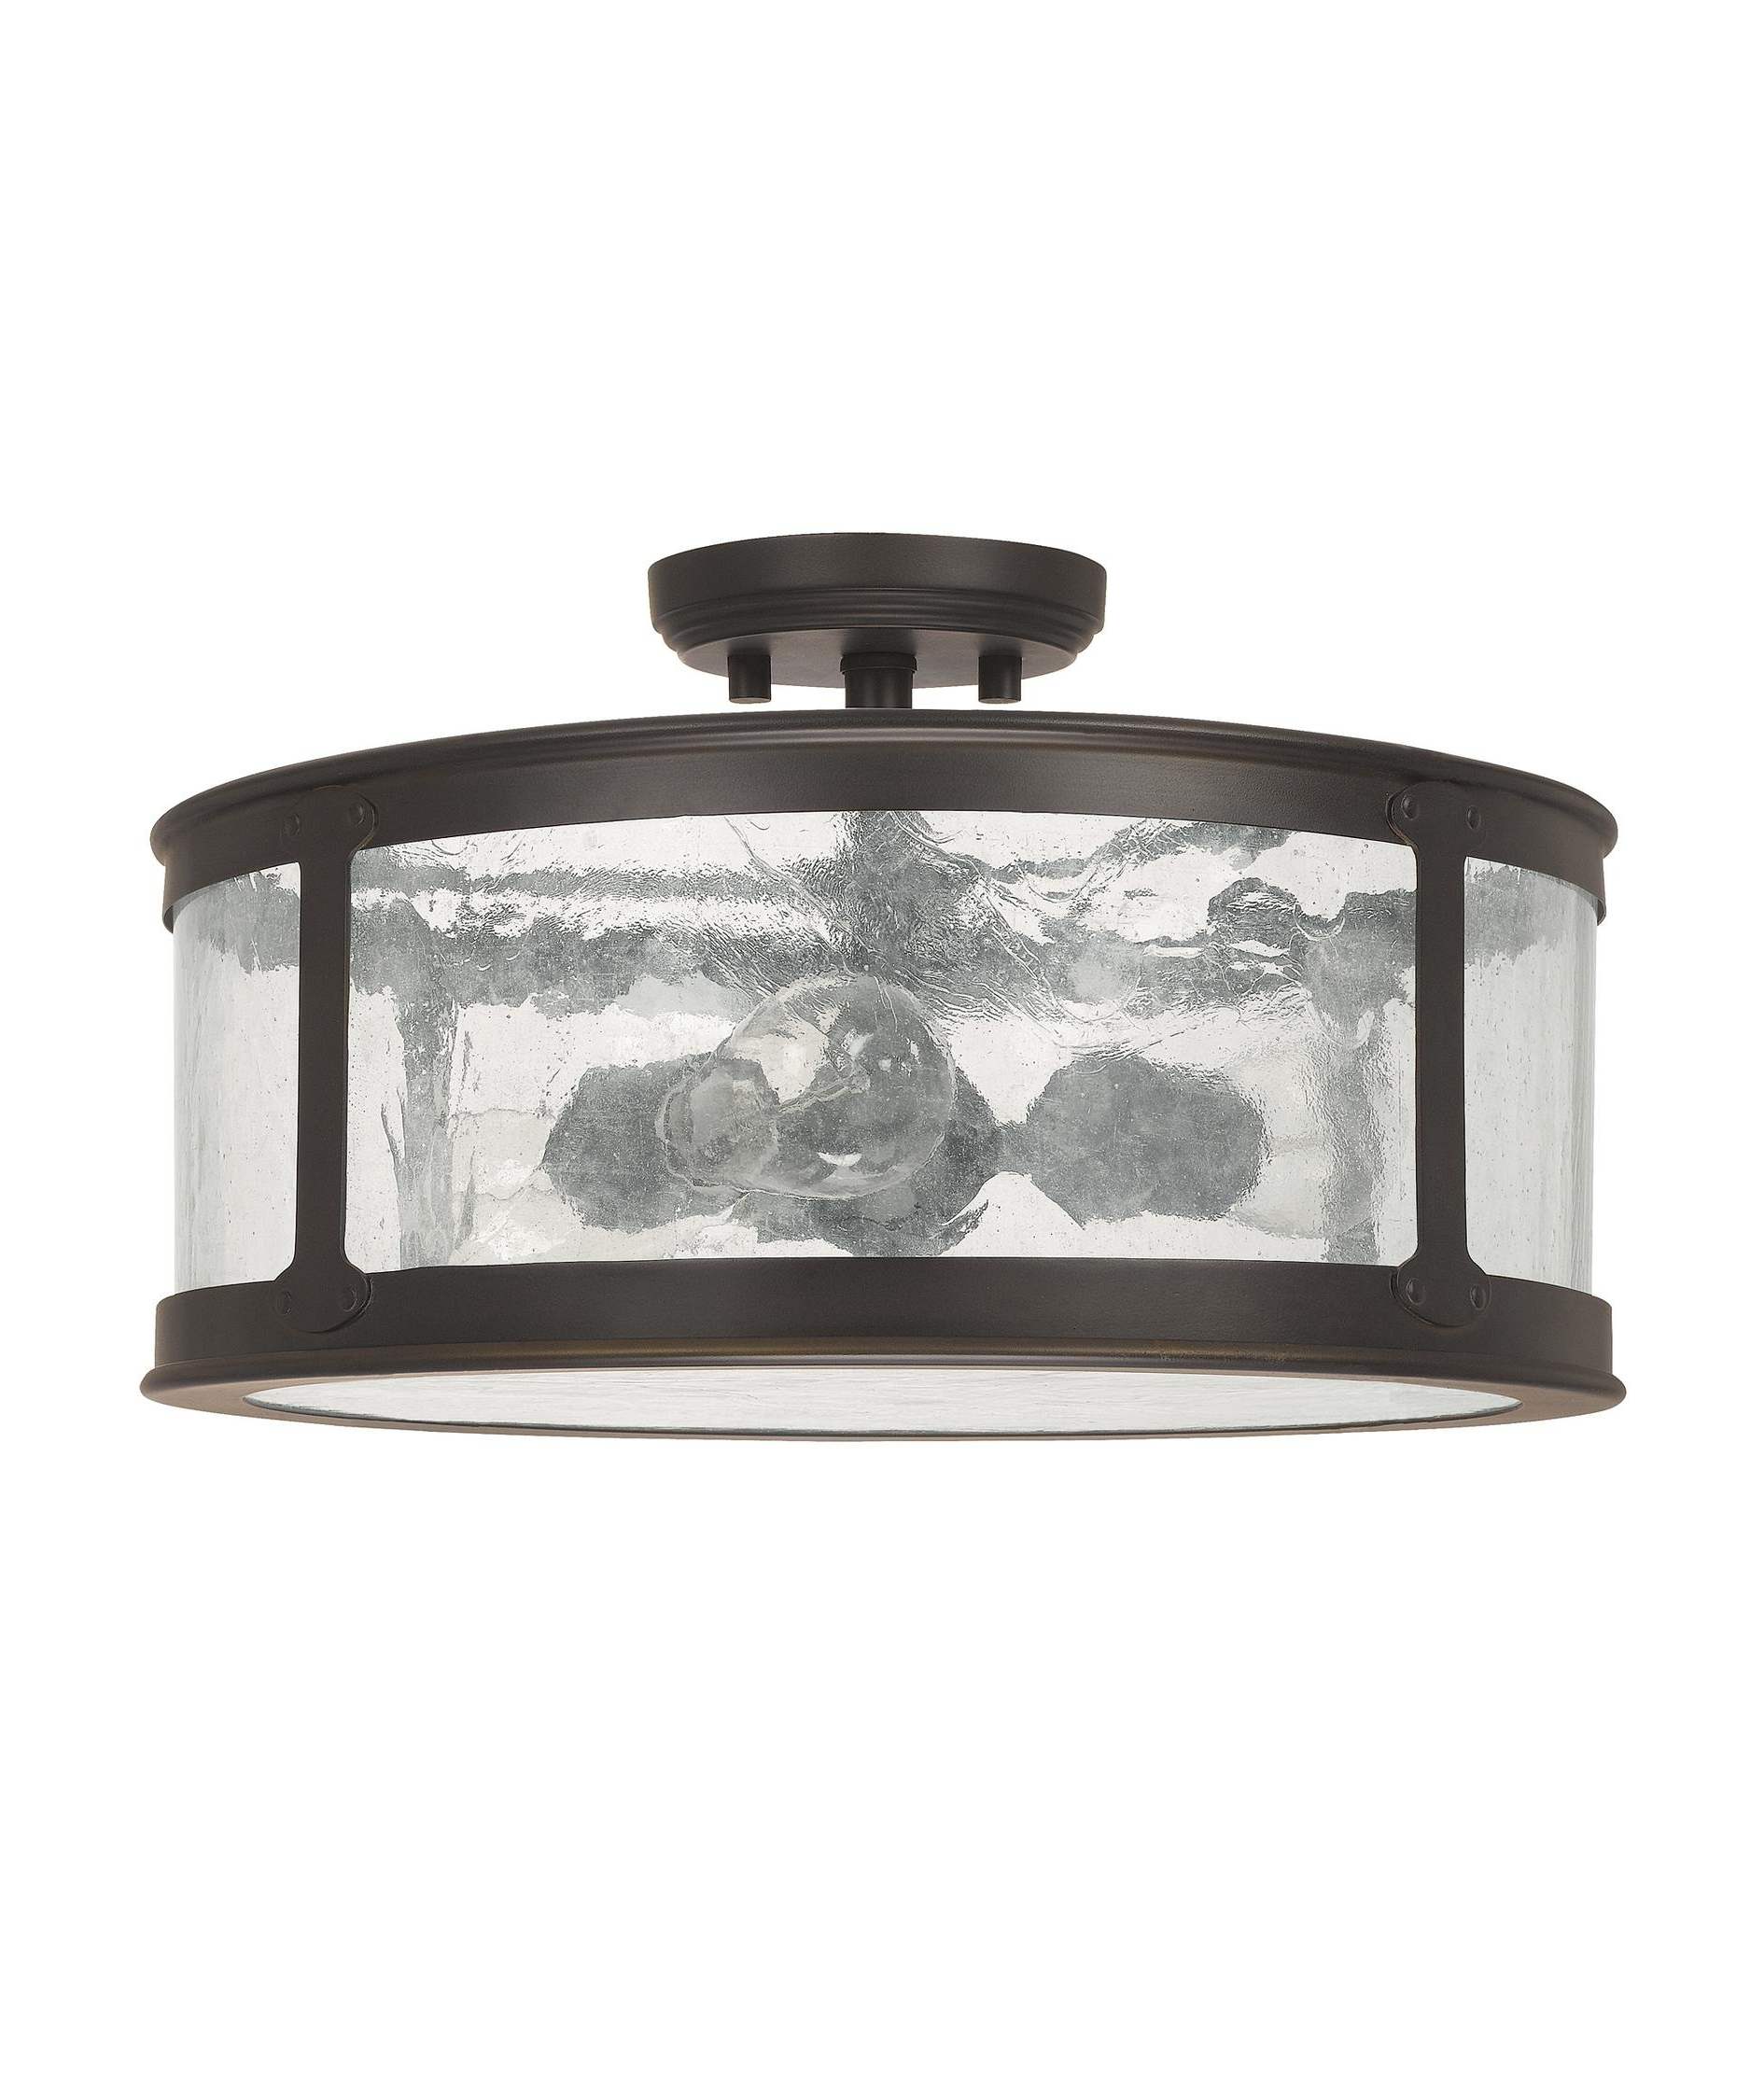 2018 Outdoor Ceiling Lighting Fixtures Regarding Capital Lighting 9567 Dylan 16 Inch Wide 3 Light Outdoor Flush Mount (View 7 of 20)